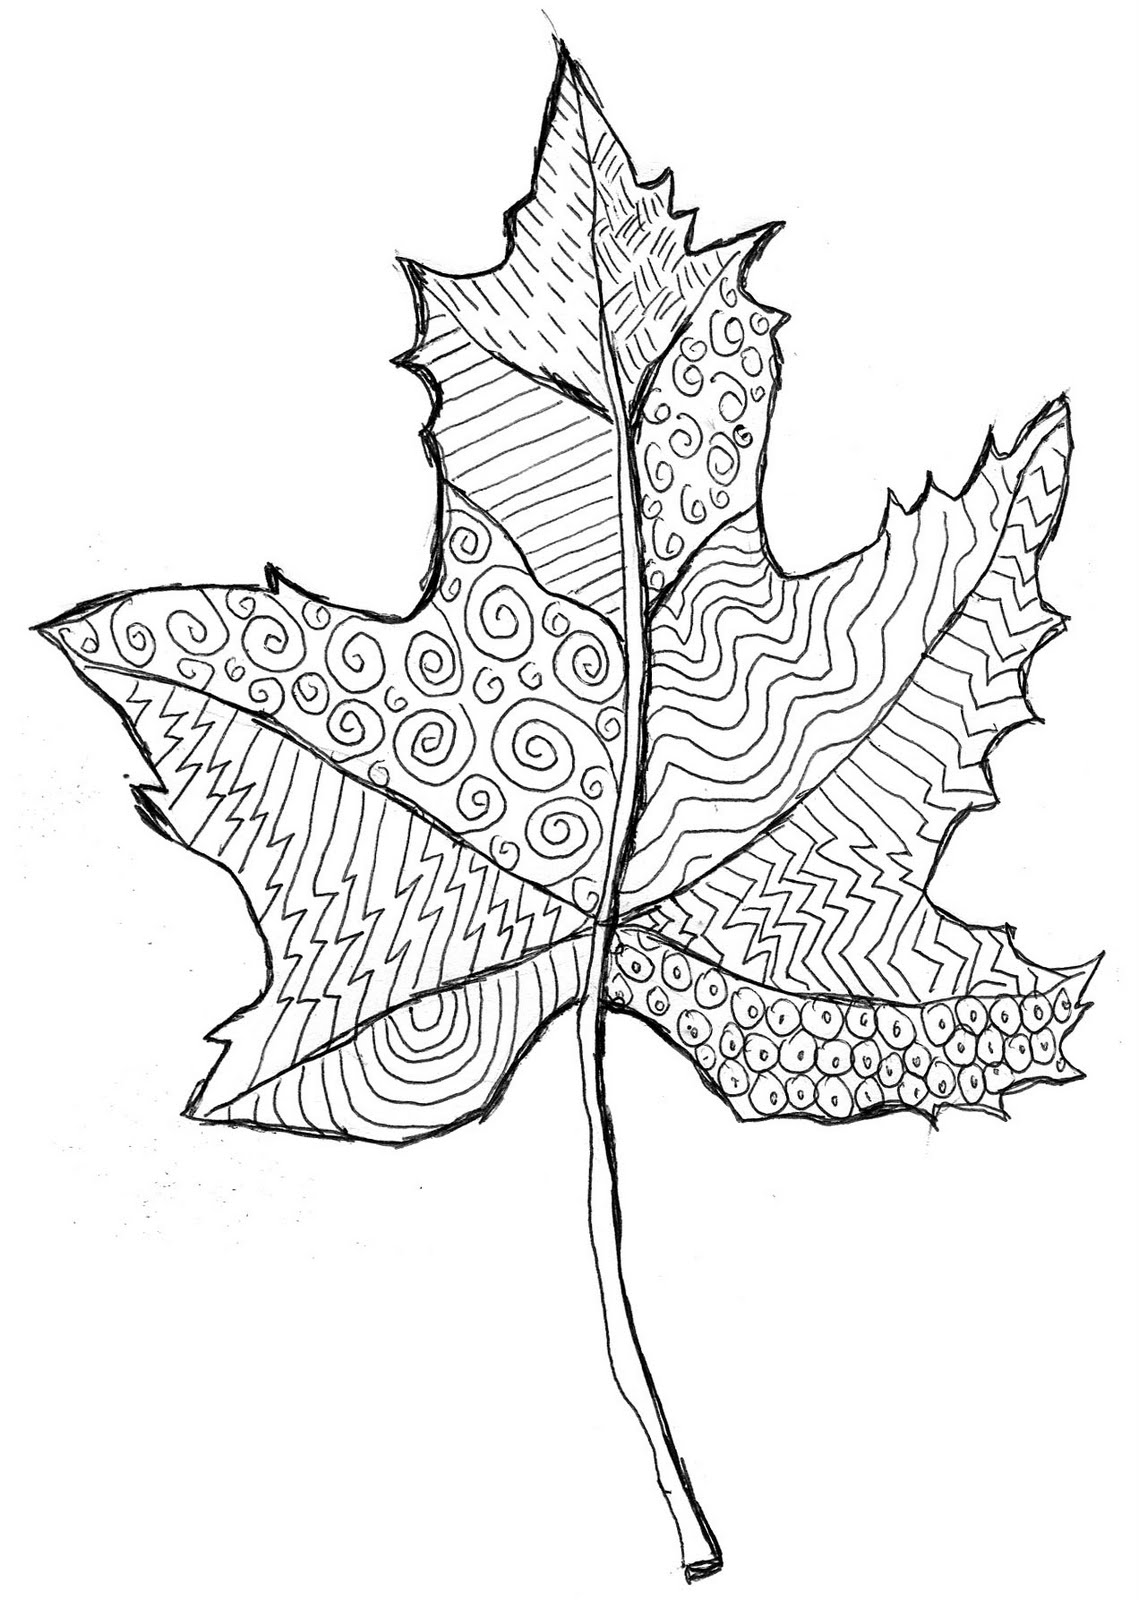 fall leaves print out autumn leaf cutouts templates clipart best out fall print leaves